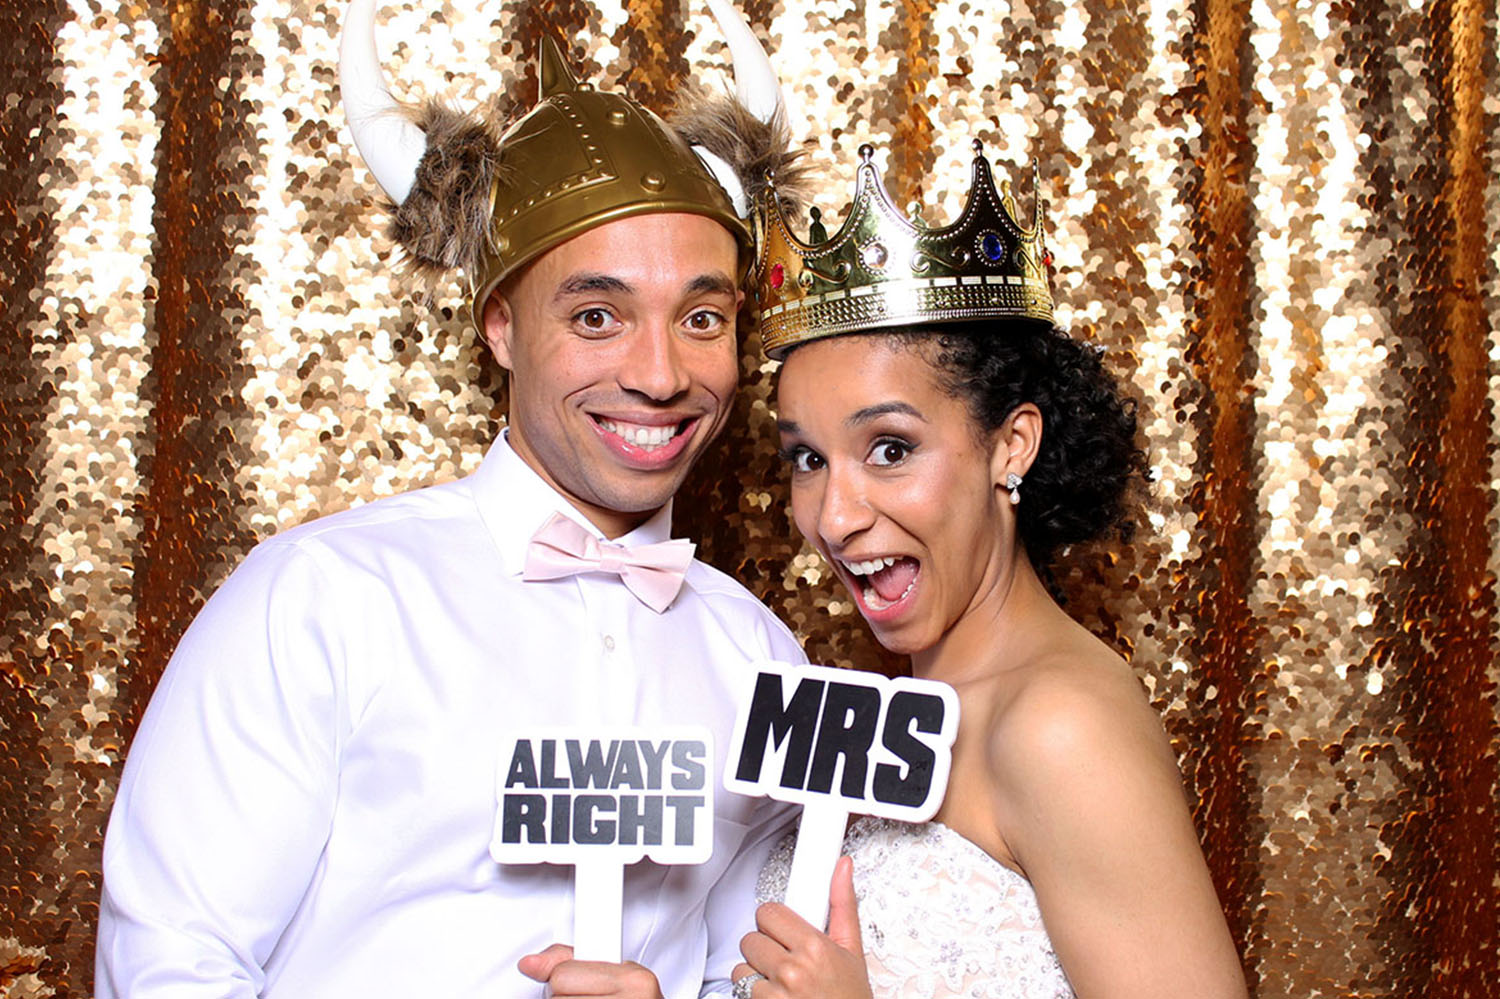 philadelphia-photo-booth-delaware-wedding-rental